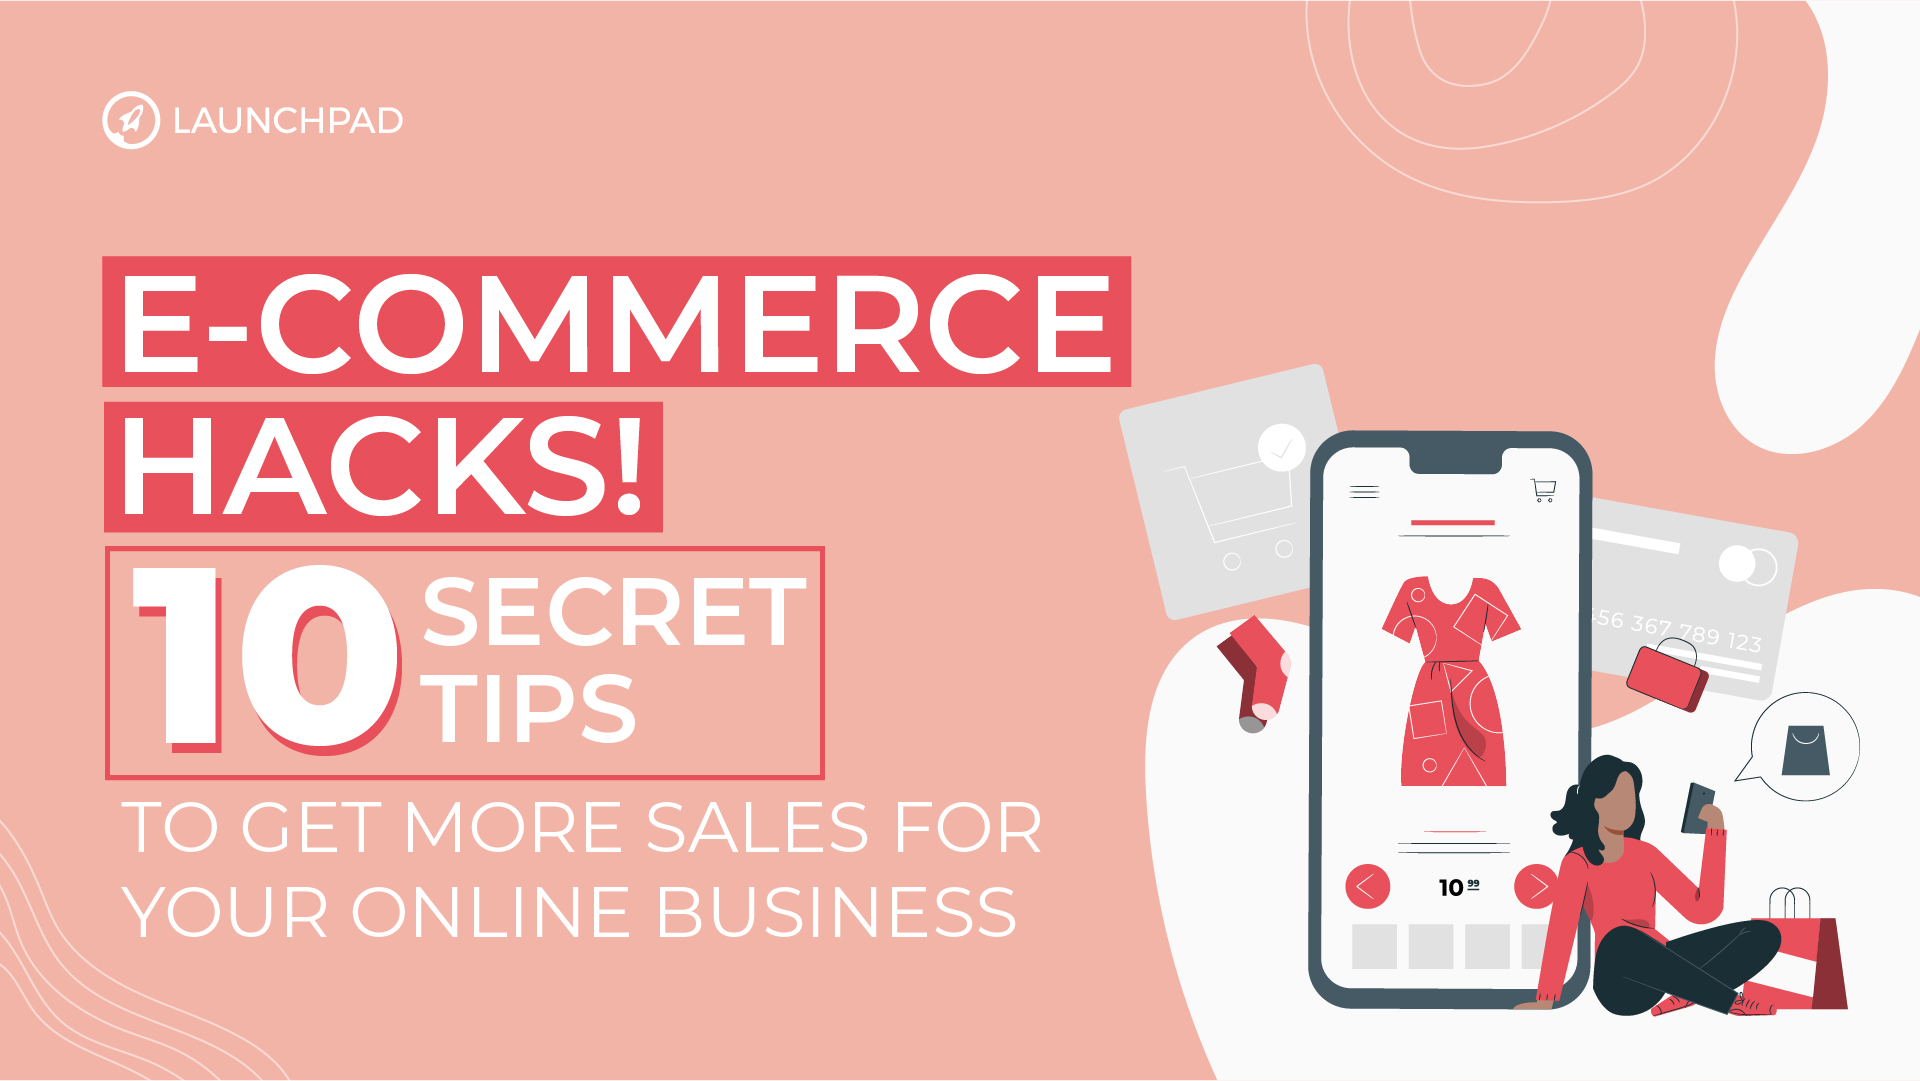 e-Commerce Hacks! x Secret Tips to Get More Sales for Your Online Business